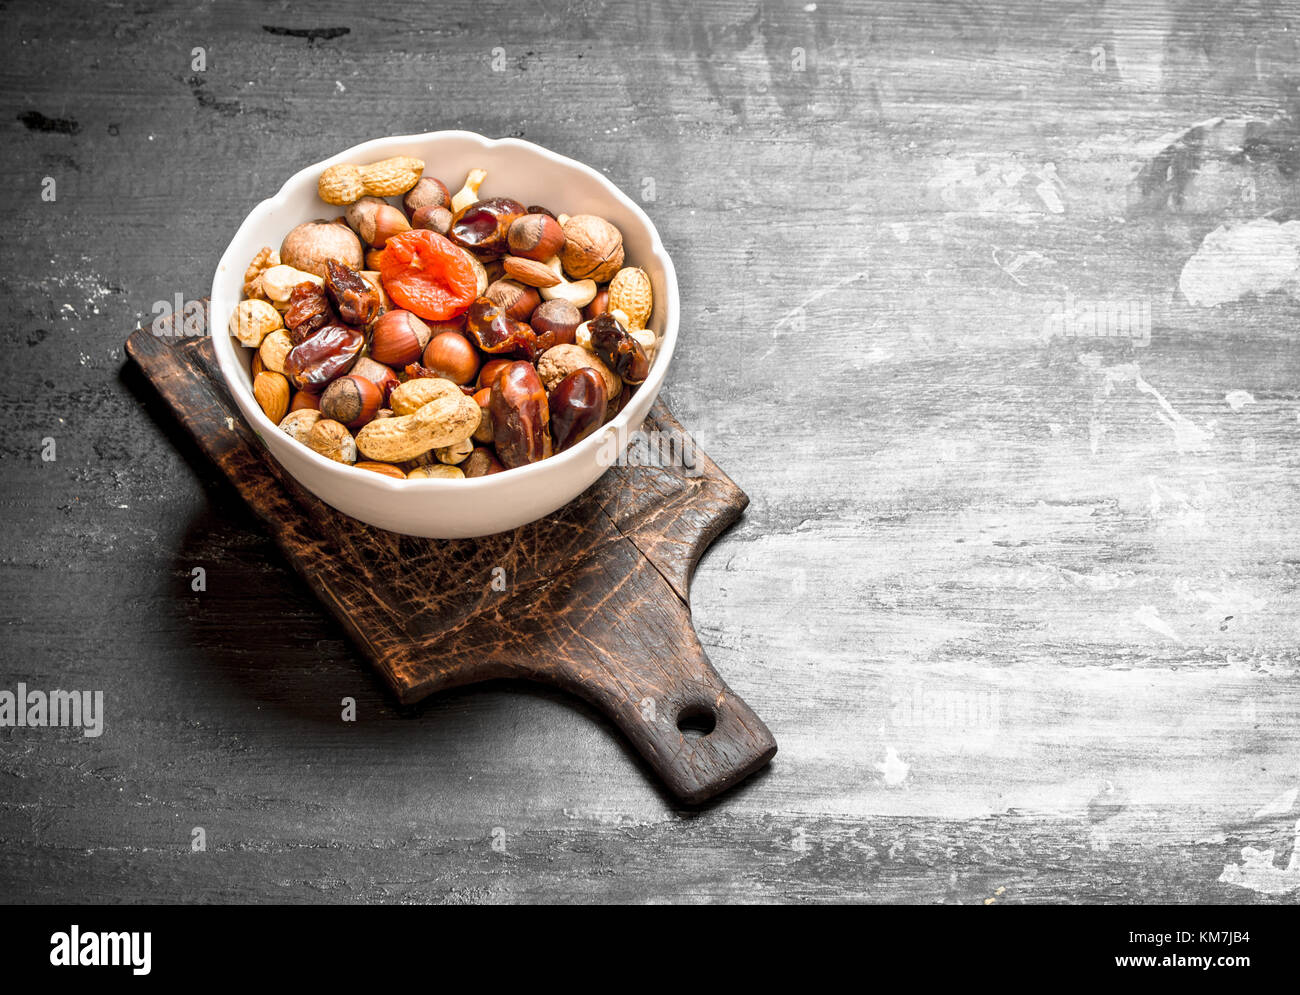 Nuts with dried fruit in a bowl. On a black chalkboard. - Stock Image